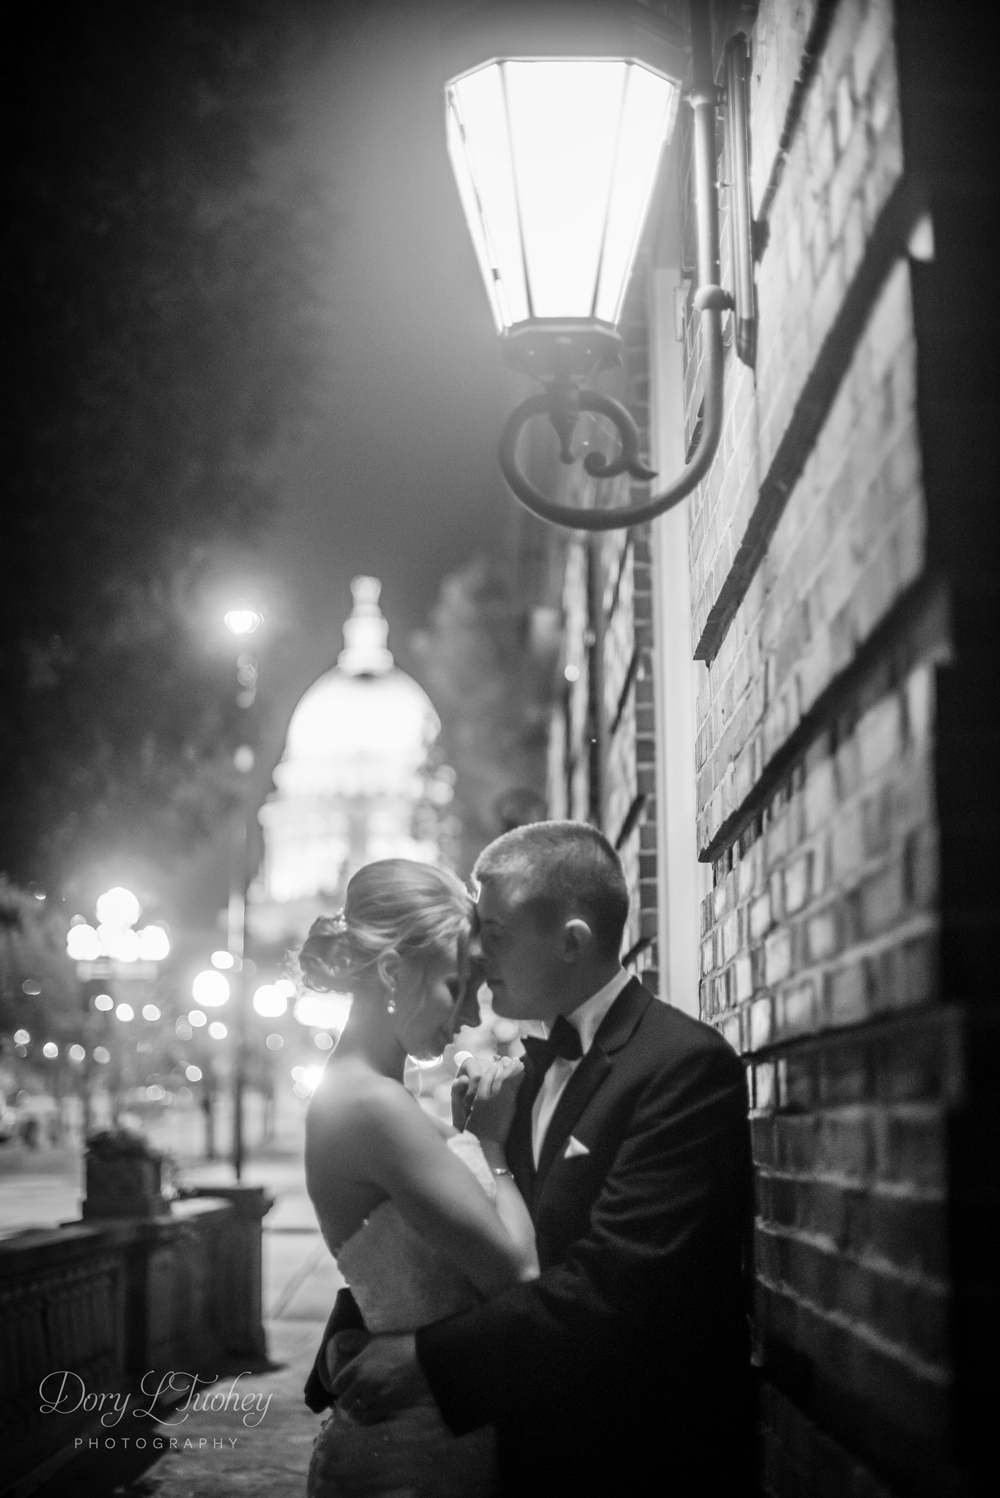 Ahhh!!! Love this night shot! Everything about it - the capitol building in the back, the brick wall, the lantern above... LOVE.